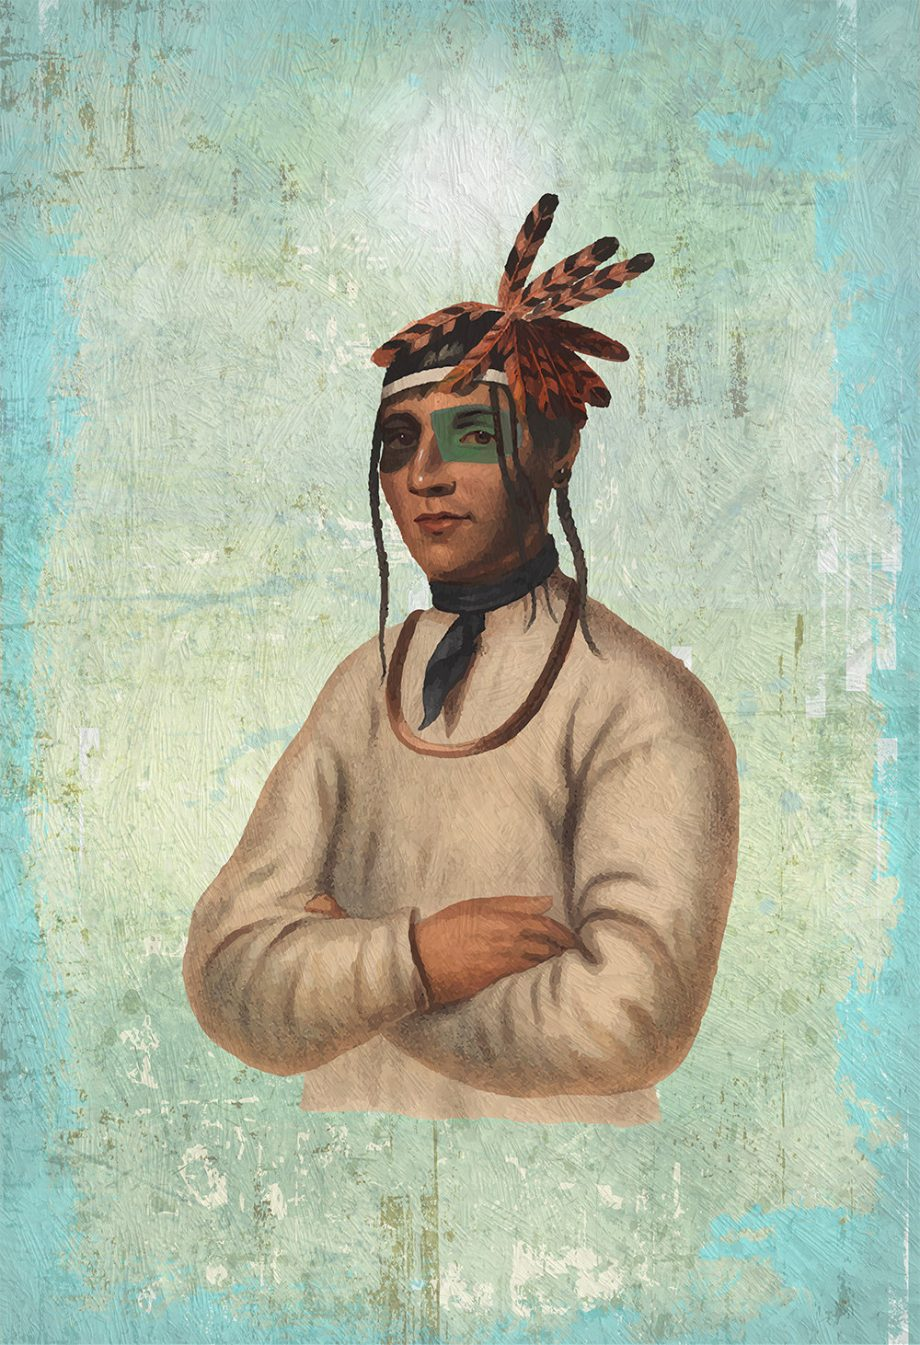 Vintage Ojibway Native American Man Art Print Vintage Giclee on Cotton Canvas and Satin Photo Paper